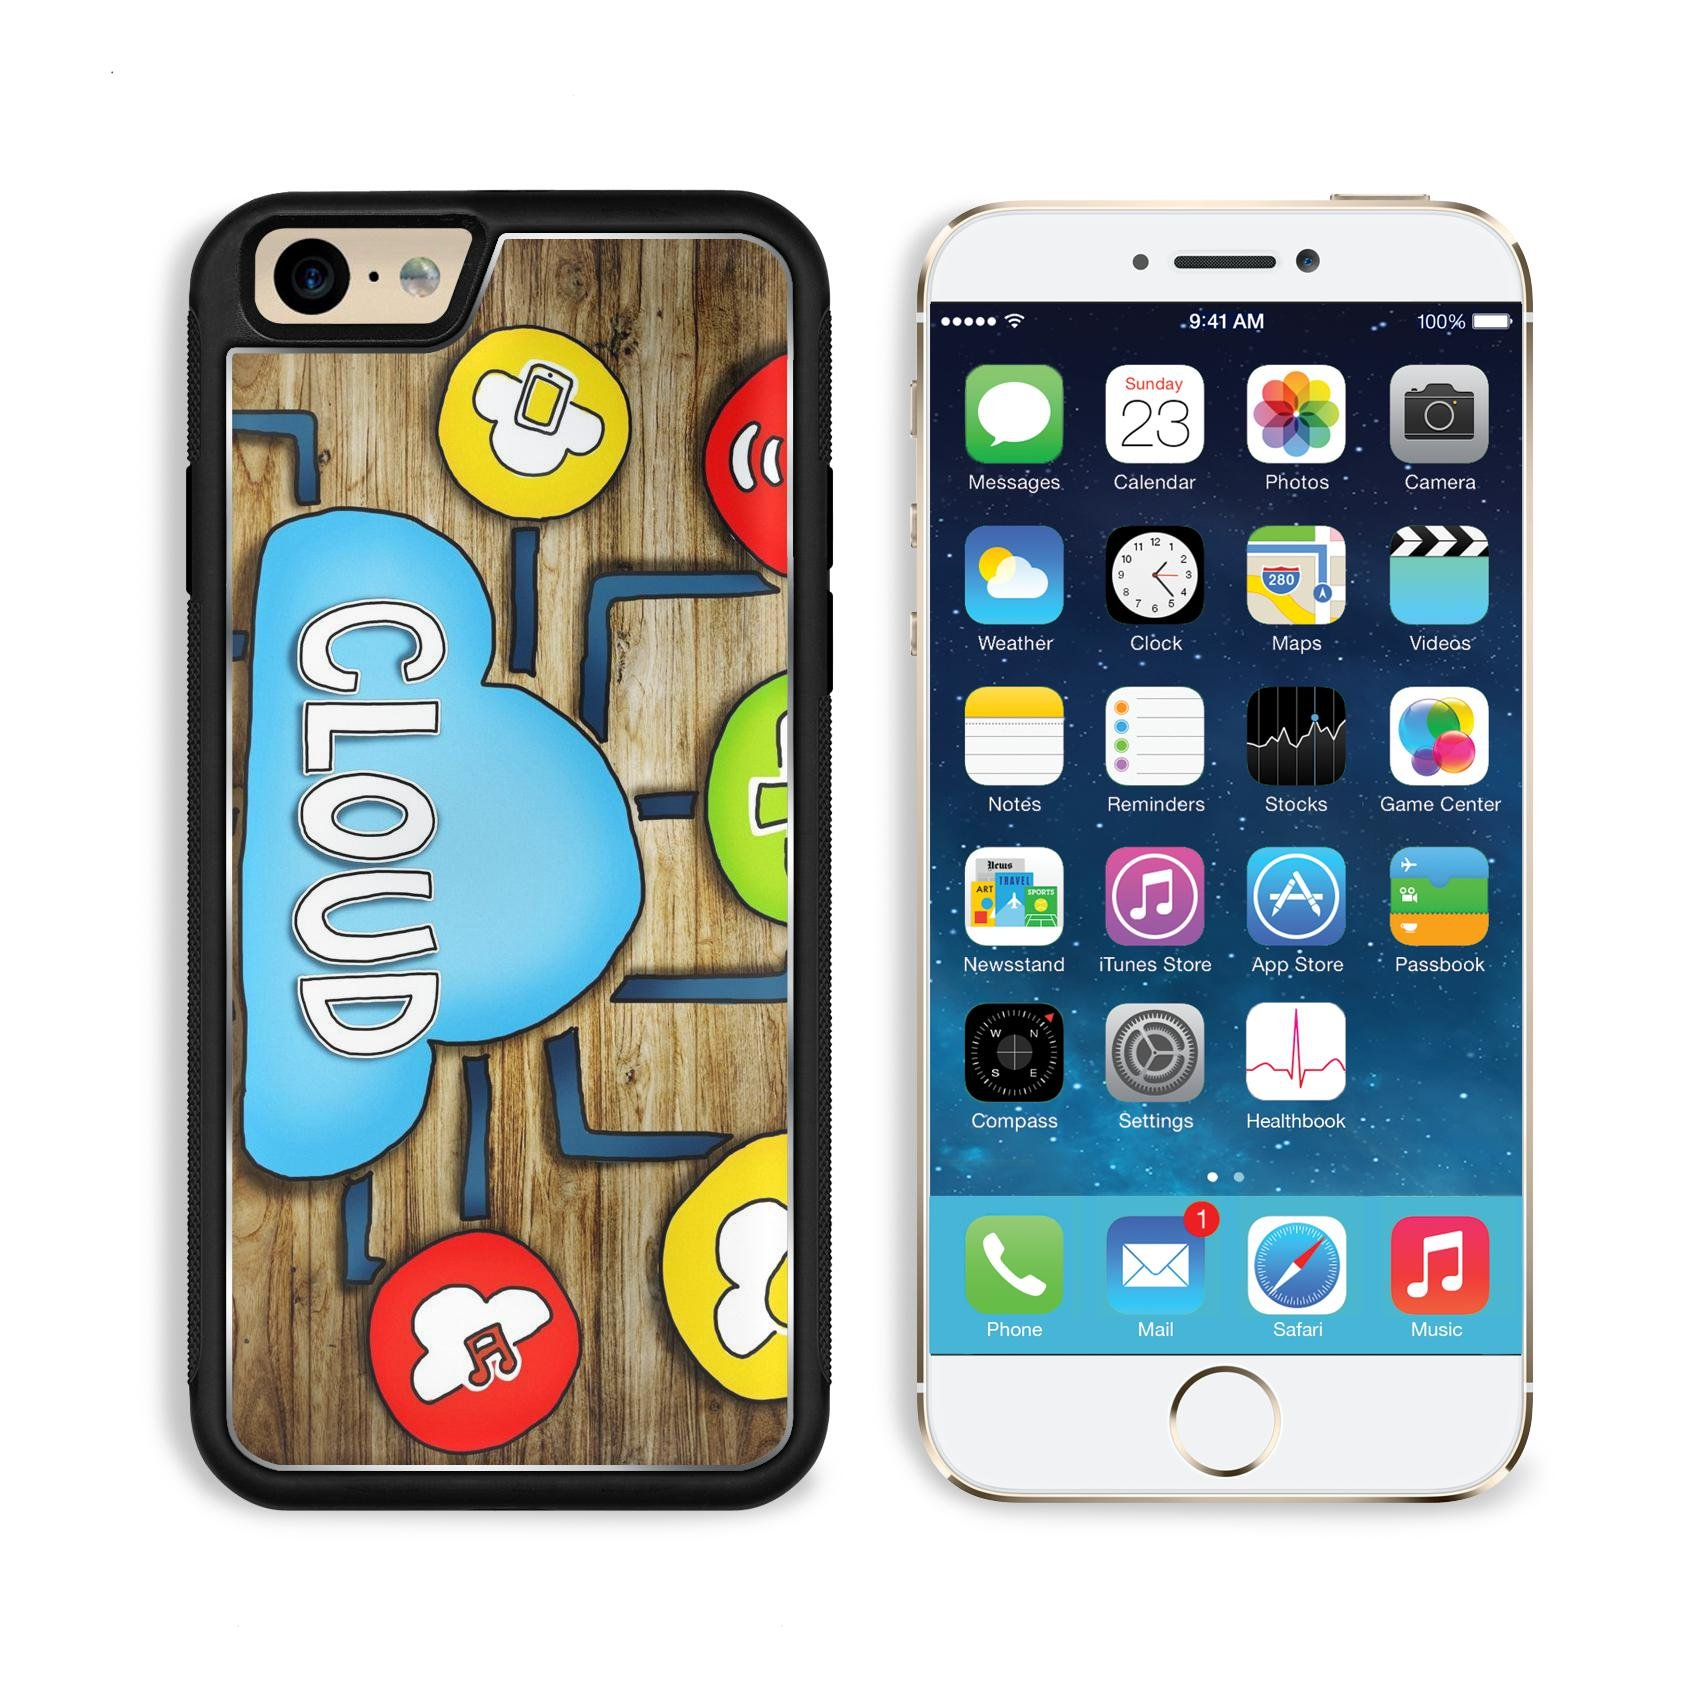 Luxlady Apple iPhone 6 iPhone 6S Aluminum Backplate Bumper Snap iphone6/6s Case IMAGE ID: 34402076 Aerial View of People and Cloud Computing Concepts by Luxlady